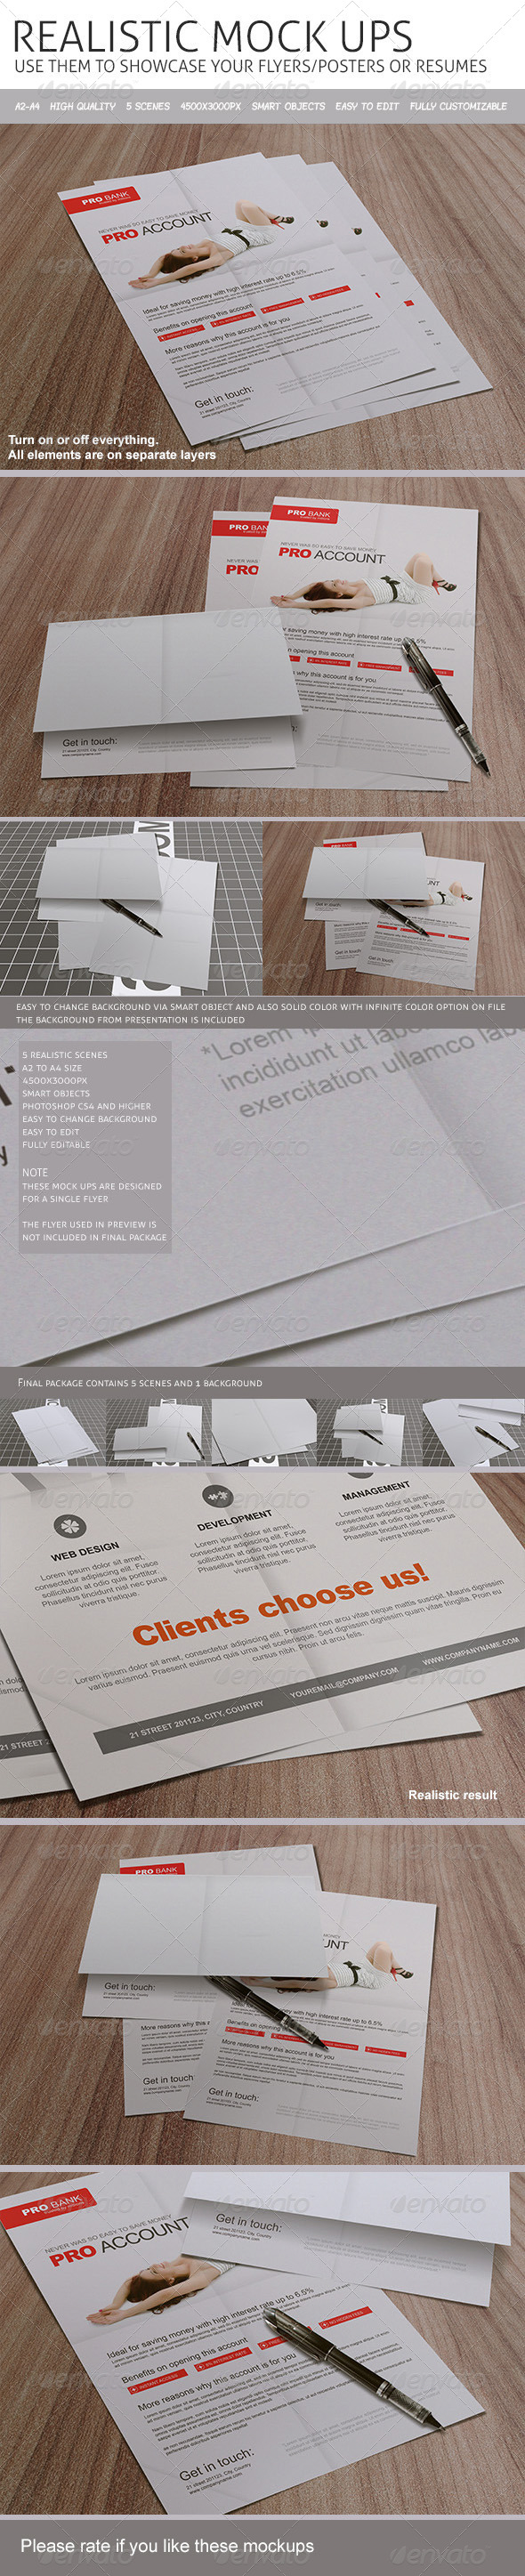 GraphicRiver Realistic Flyers Posters Resume Mockups 8364645